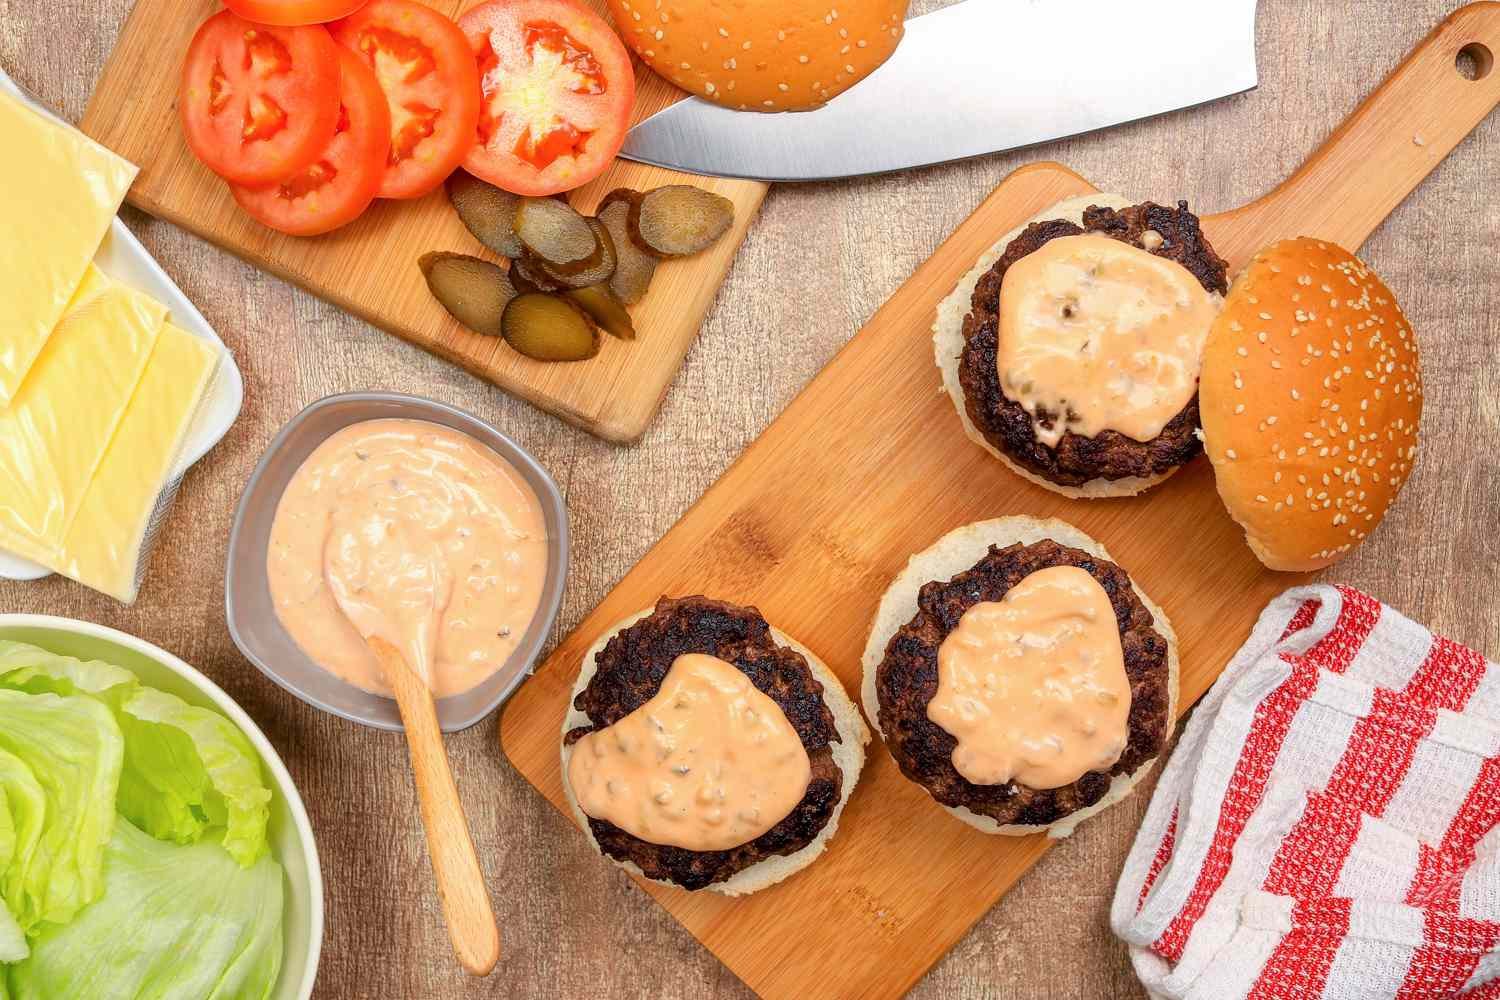 Serving burgers with McDonald's Famous Special Sauce